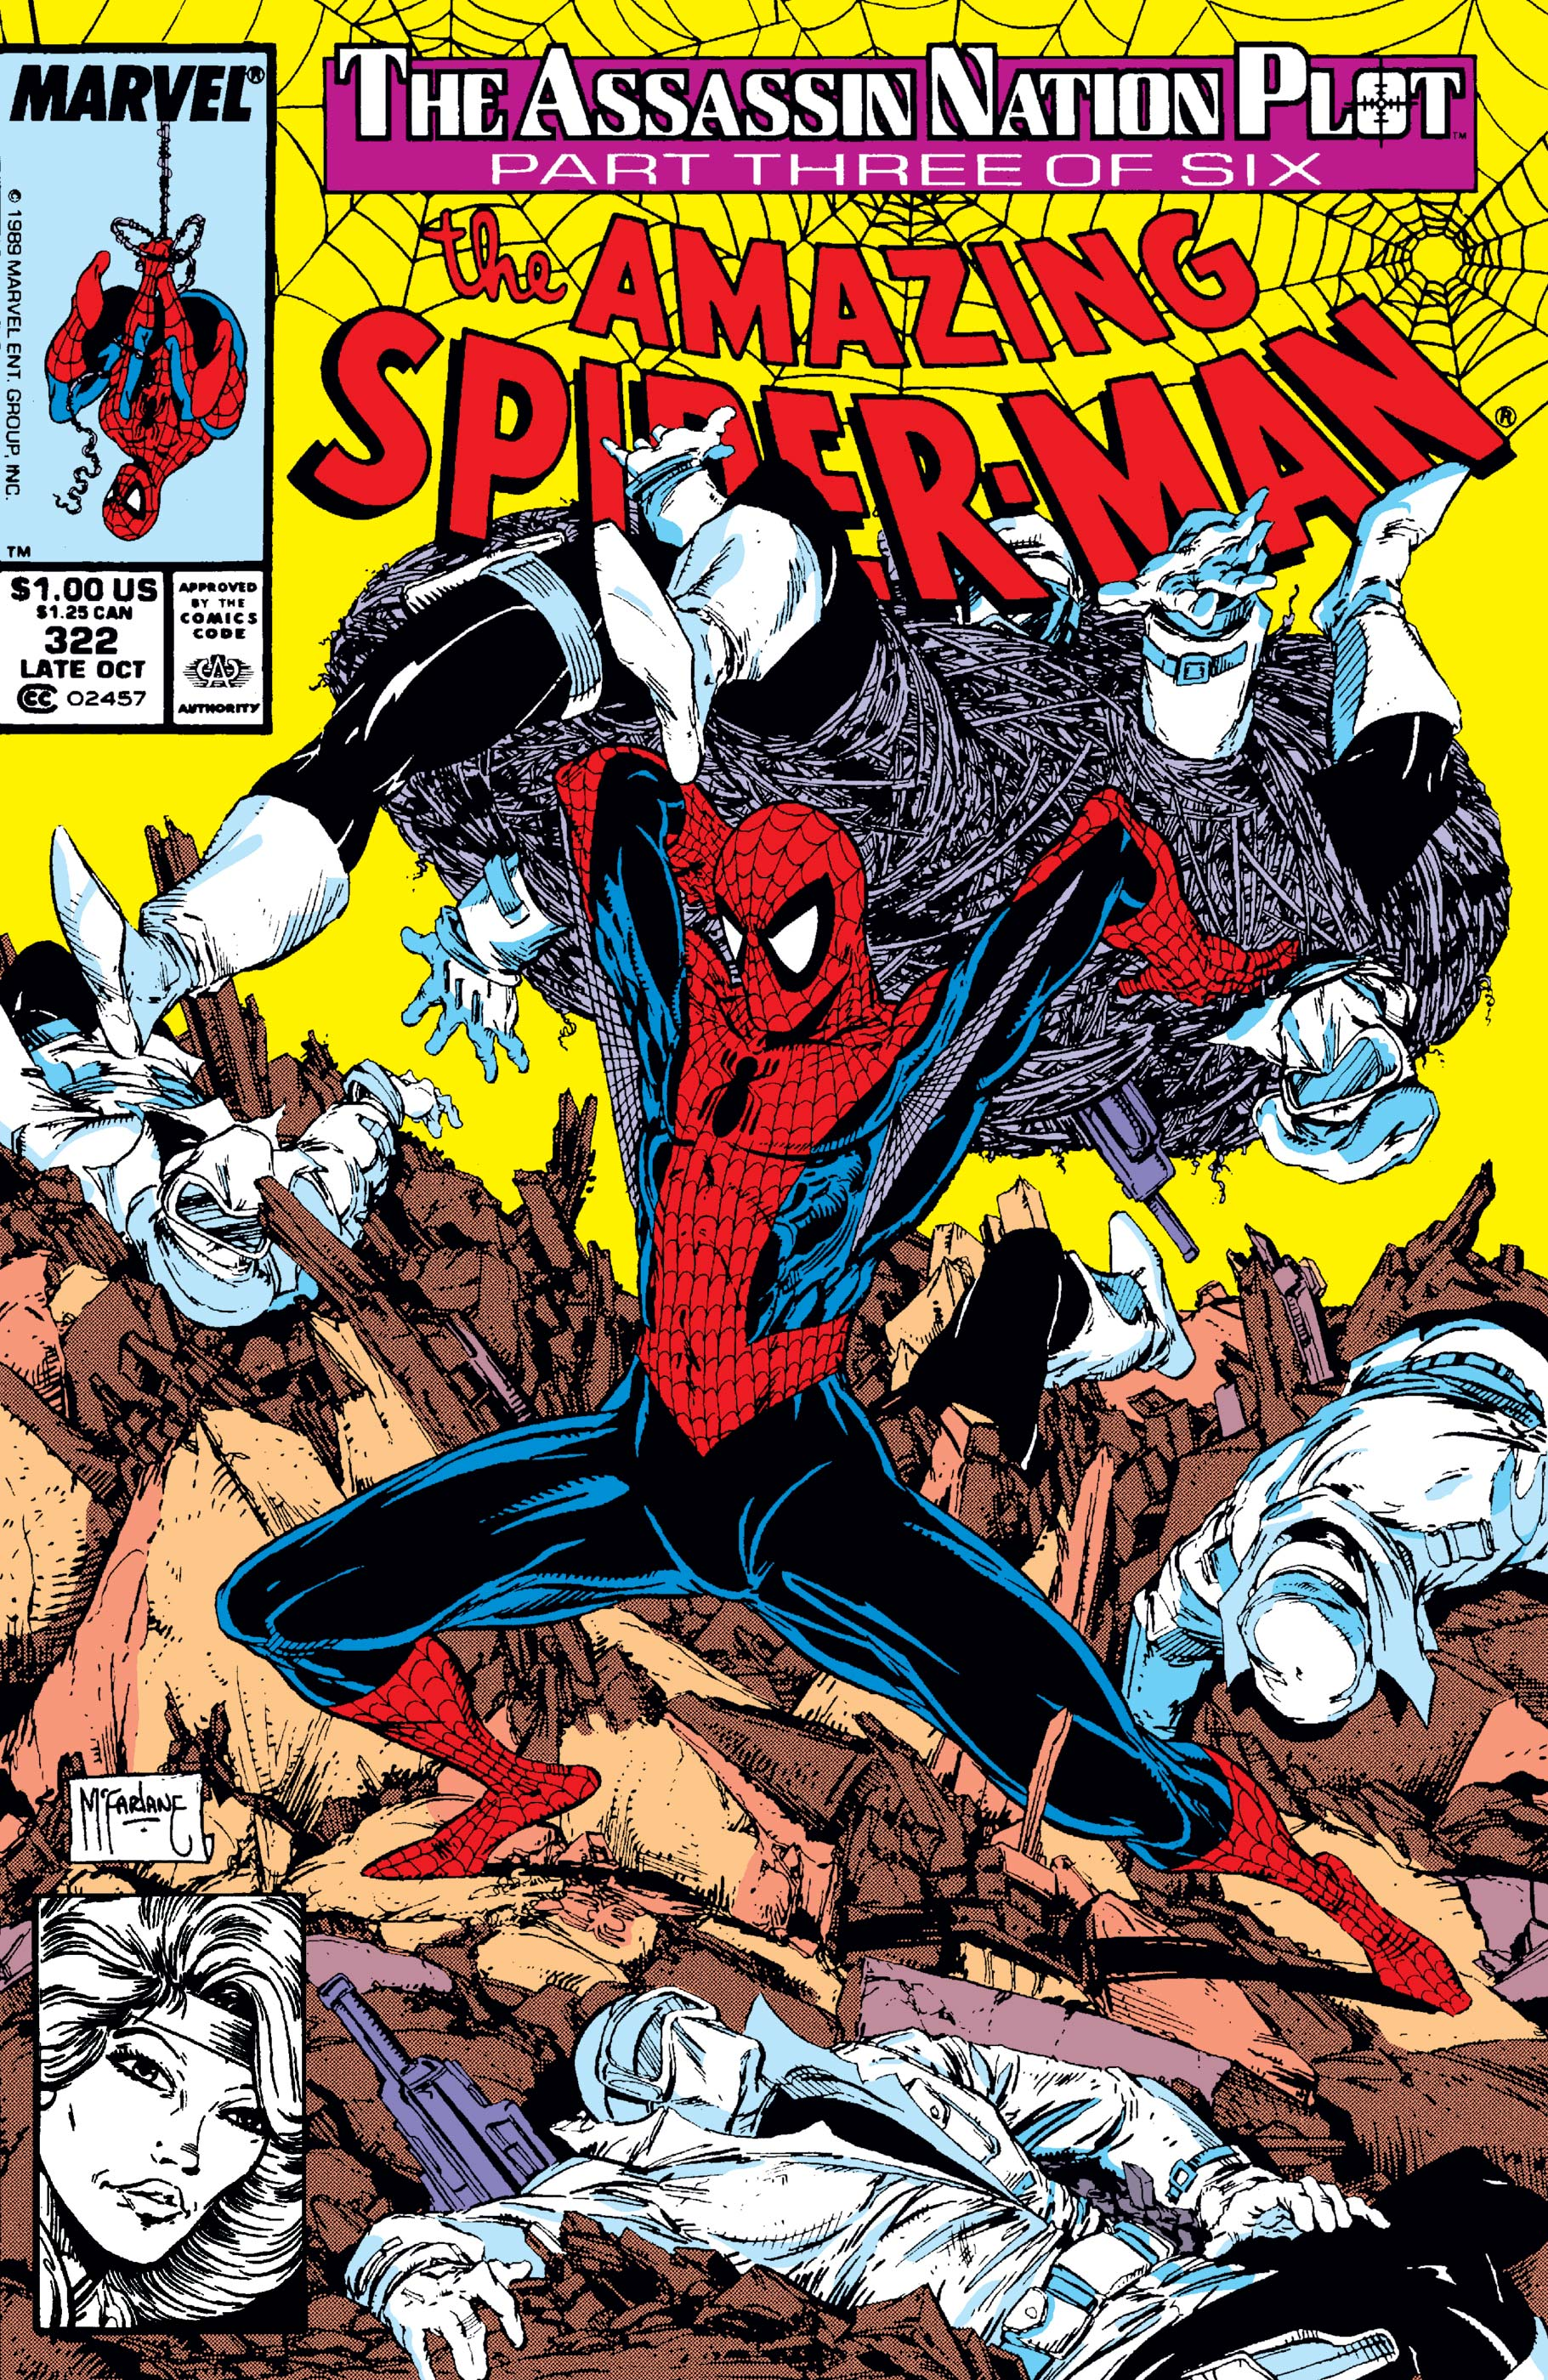 The Amazing Spider-Man (1963) #322